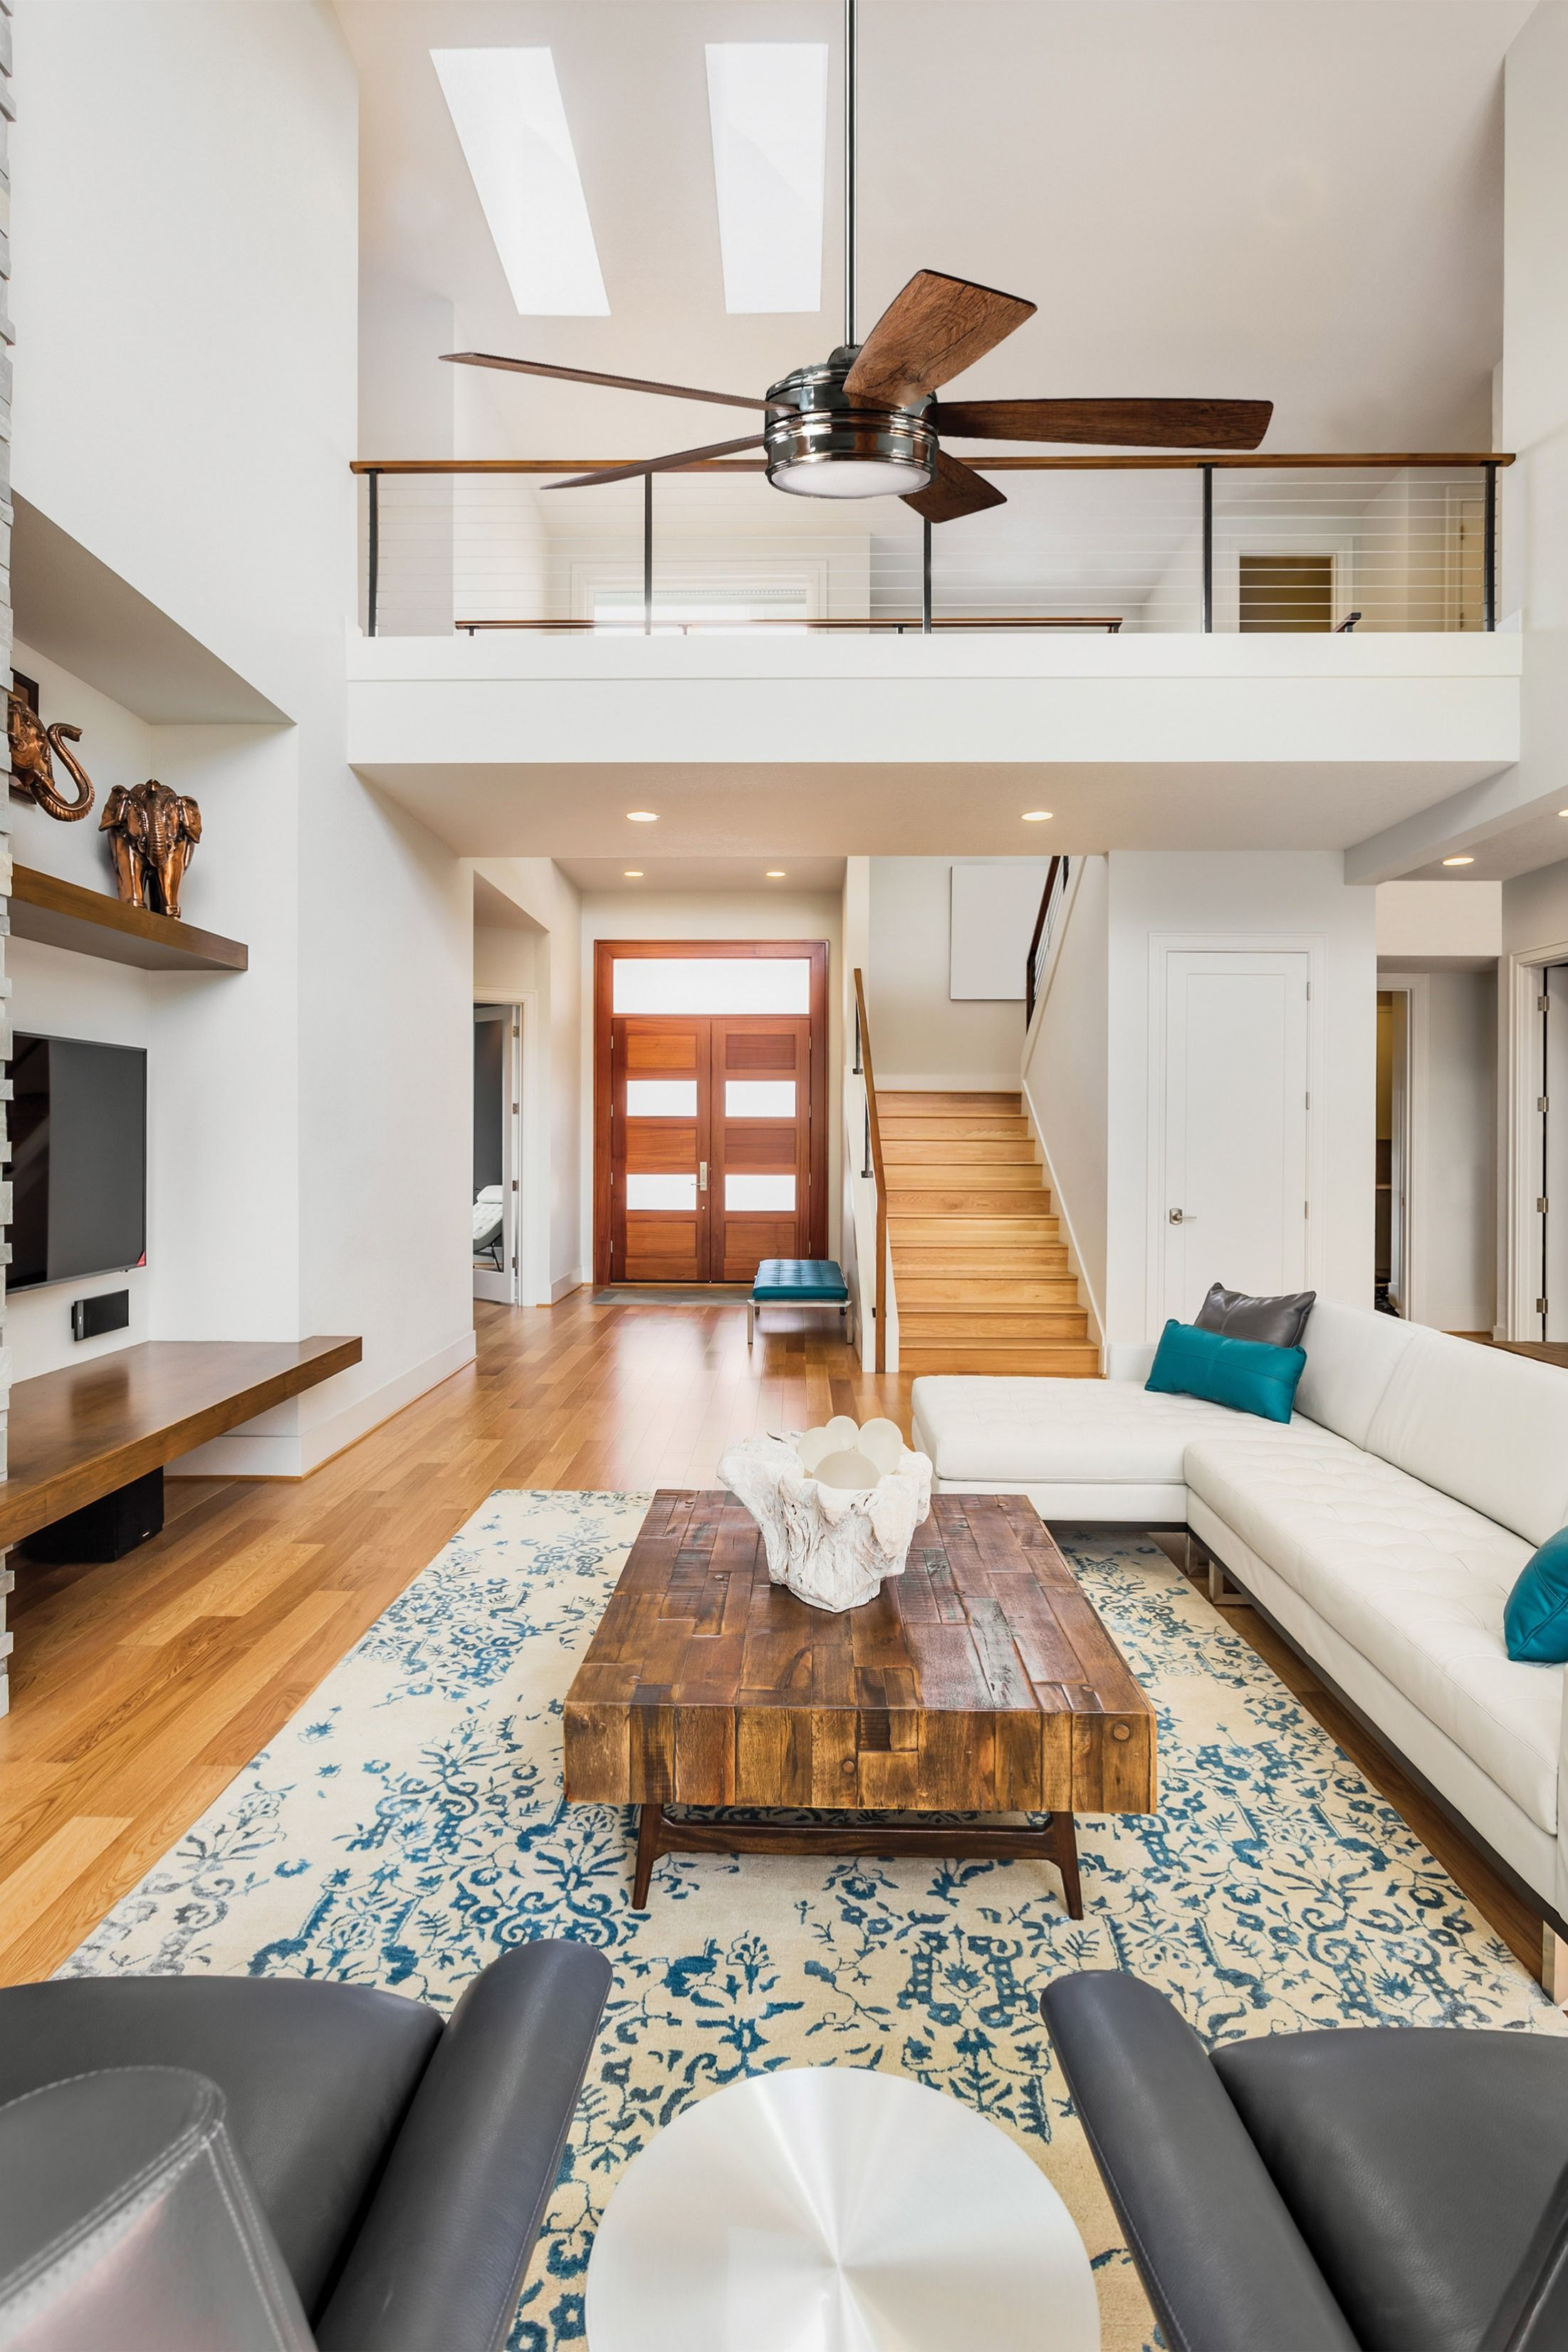 Ceiling Fan With Led Light High Ceiling Living Room Tiny House